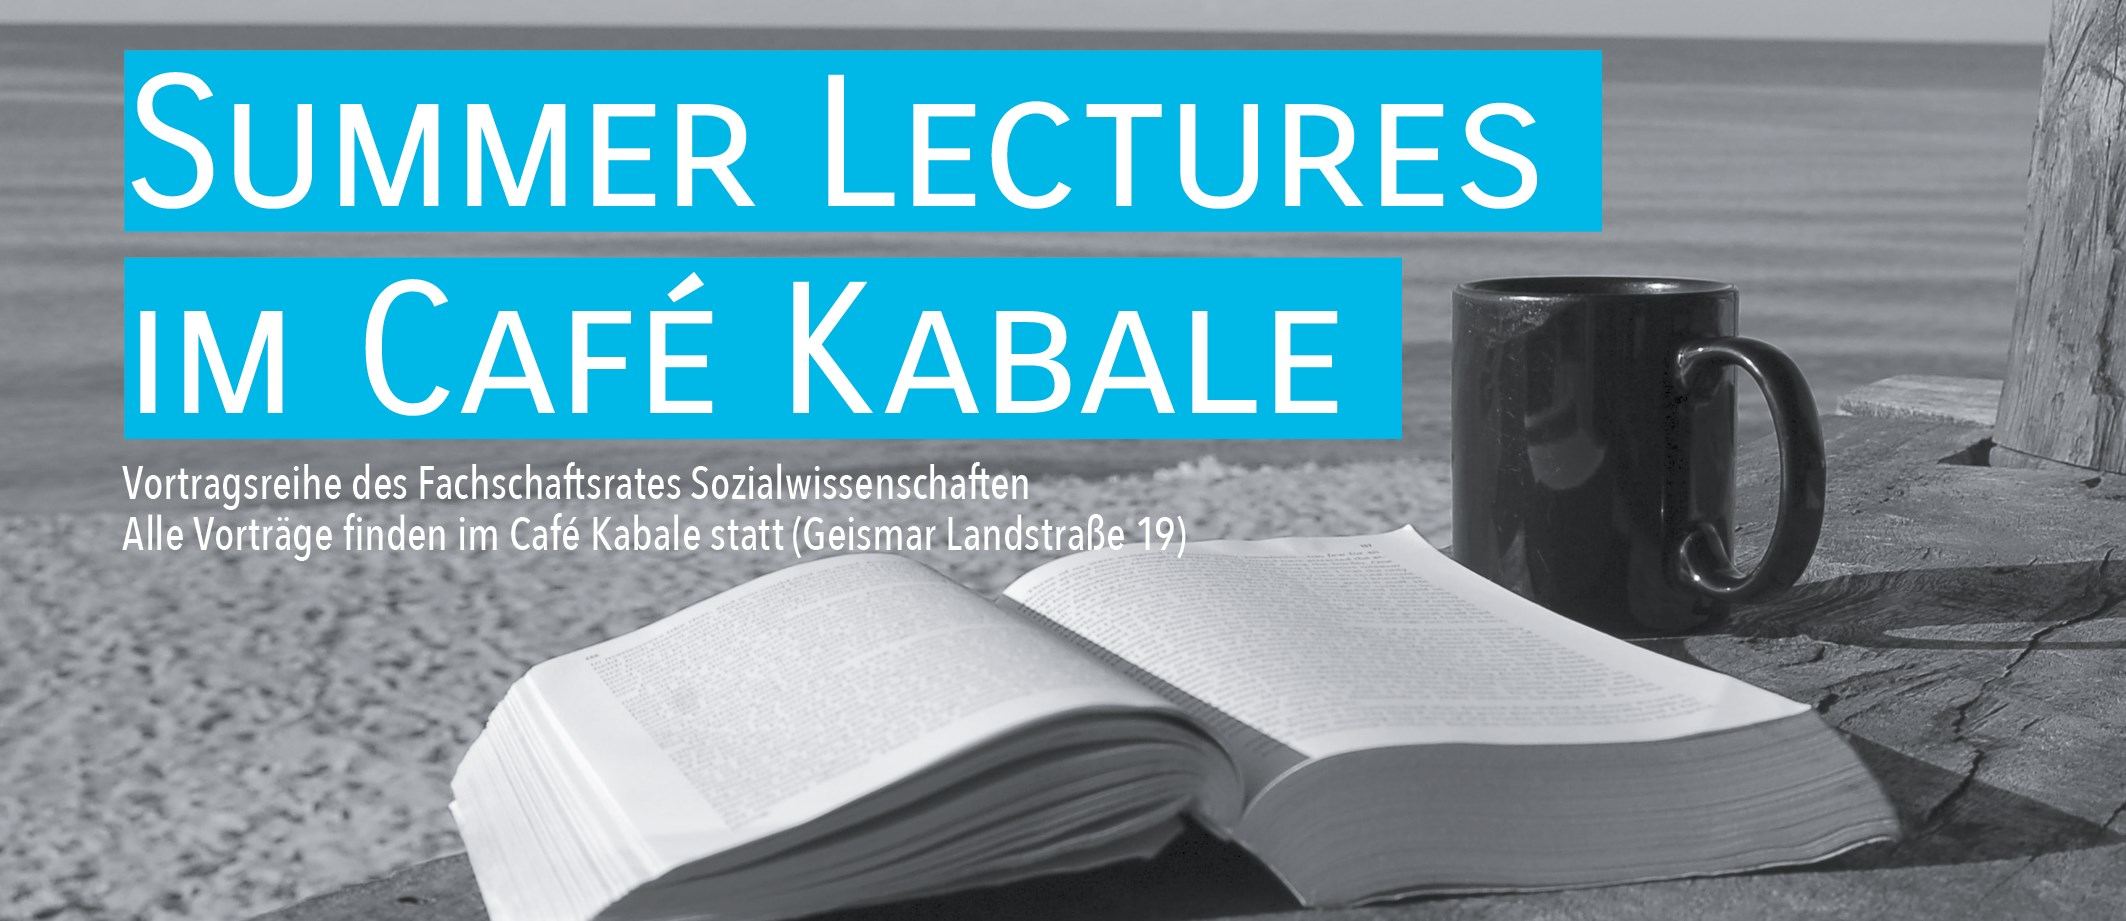 Summer Lectures